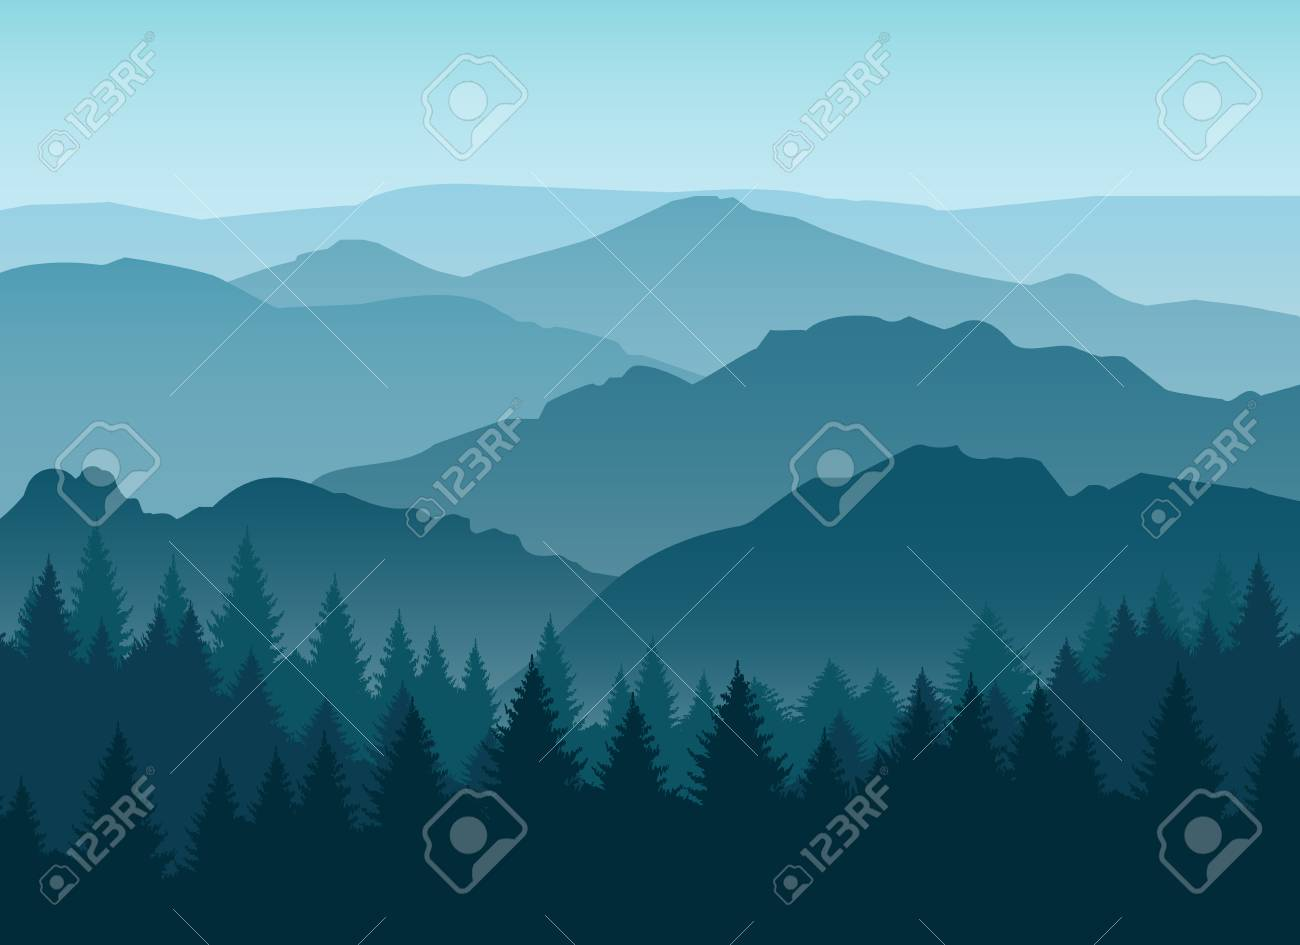 Vector misty or smokey blue mountain silhouettes background. Morning layered mountains with mist - 87567847